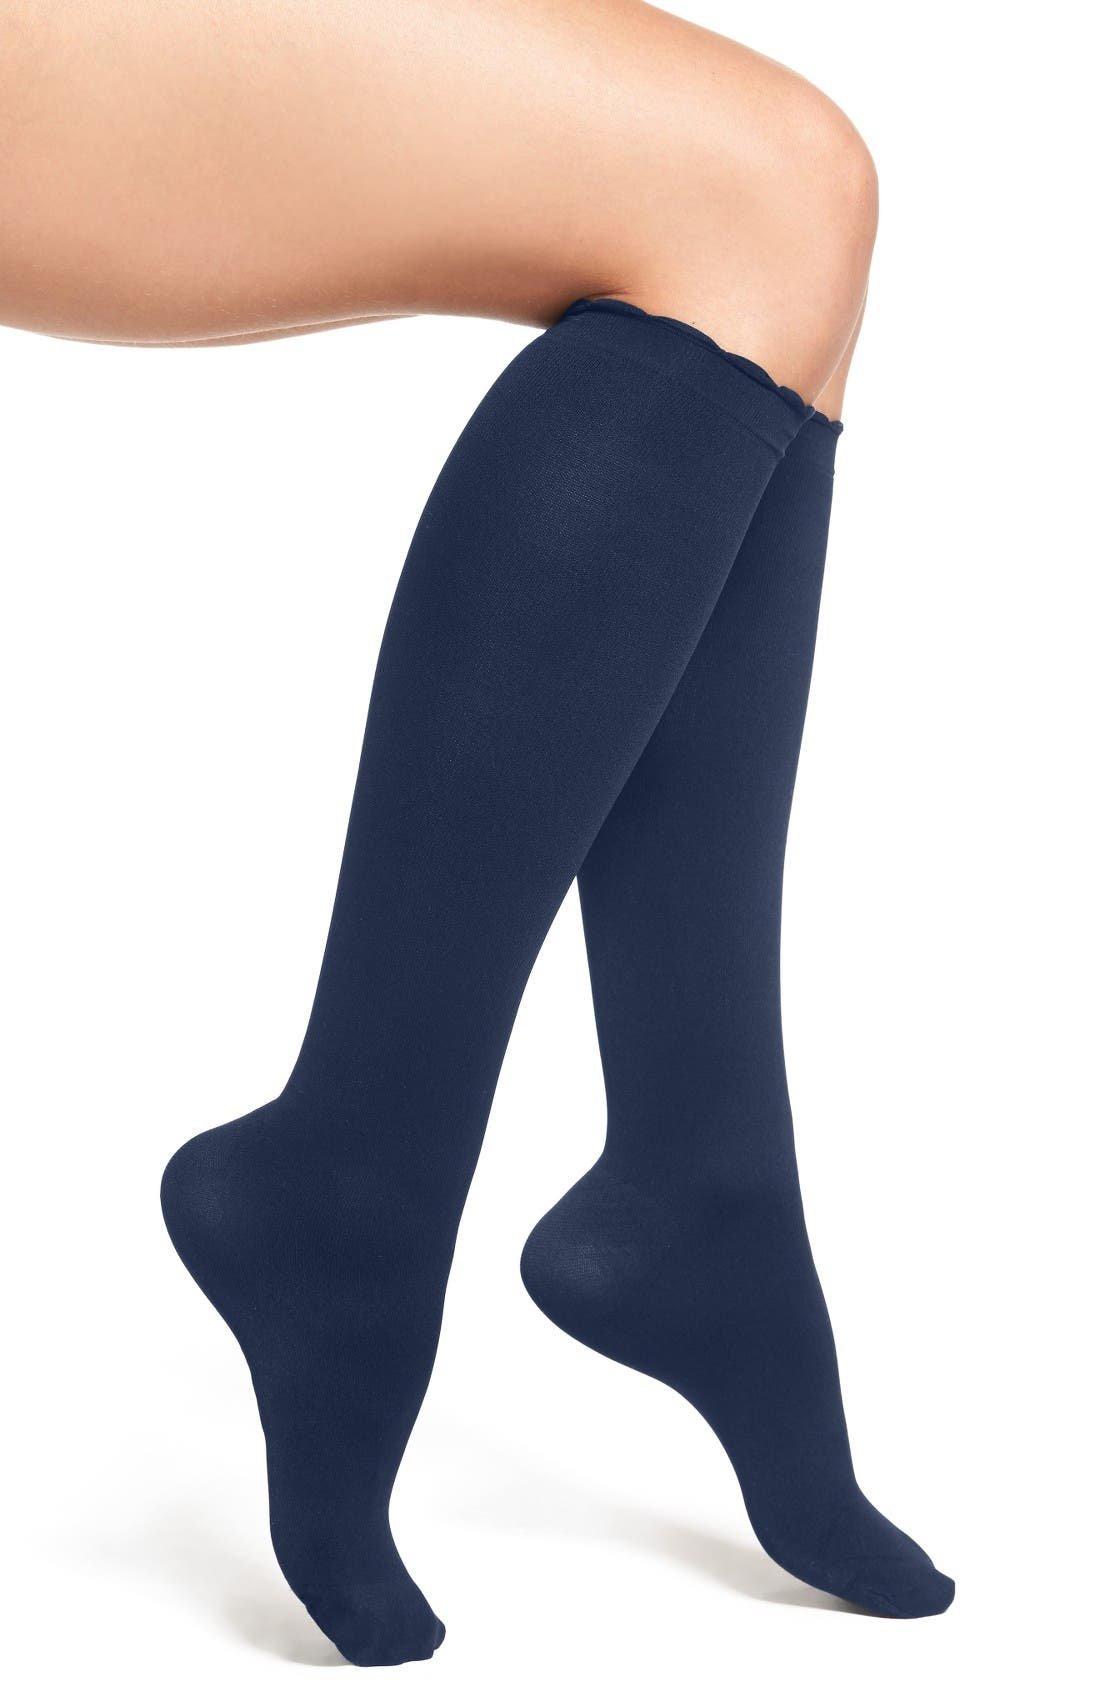 Compression Trouser Socks,                             Main thumbnail 1, color,                             Navy